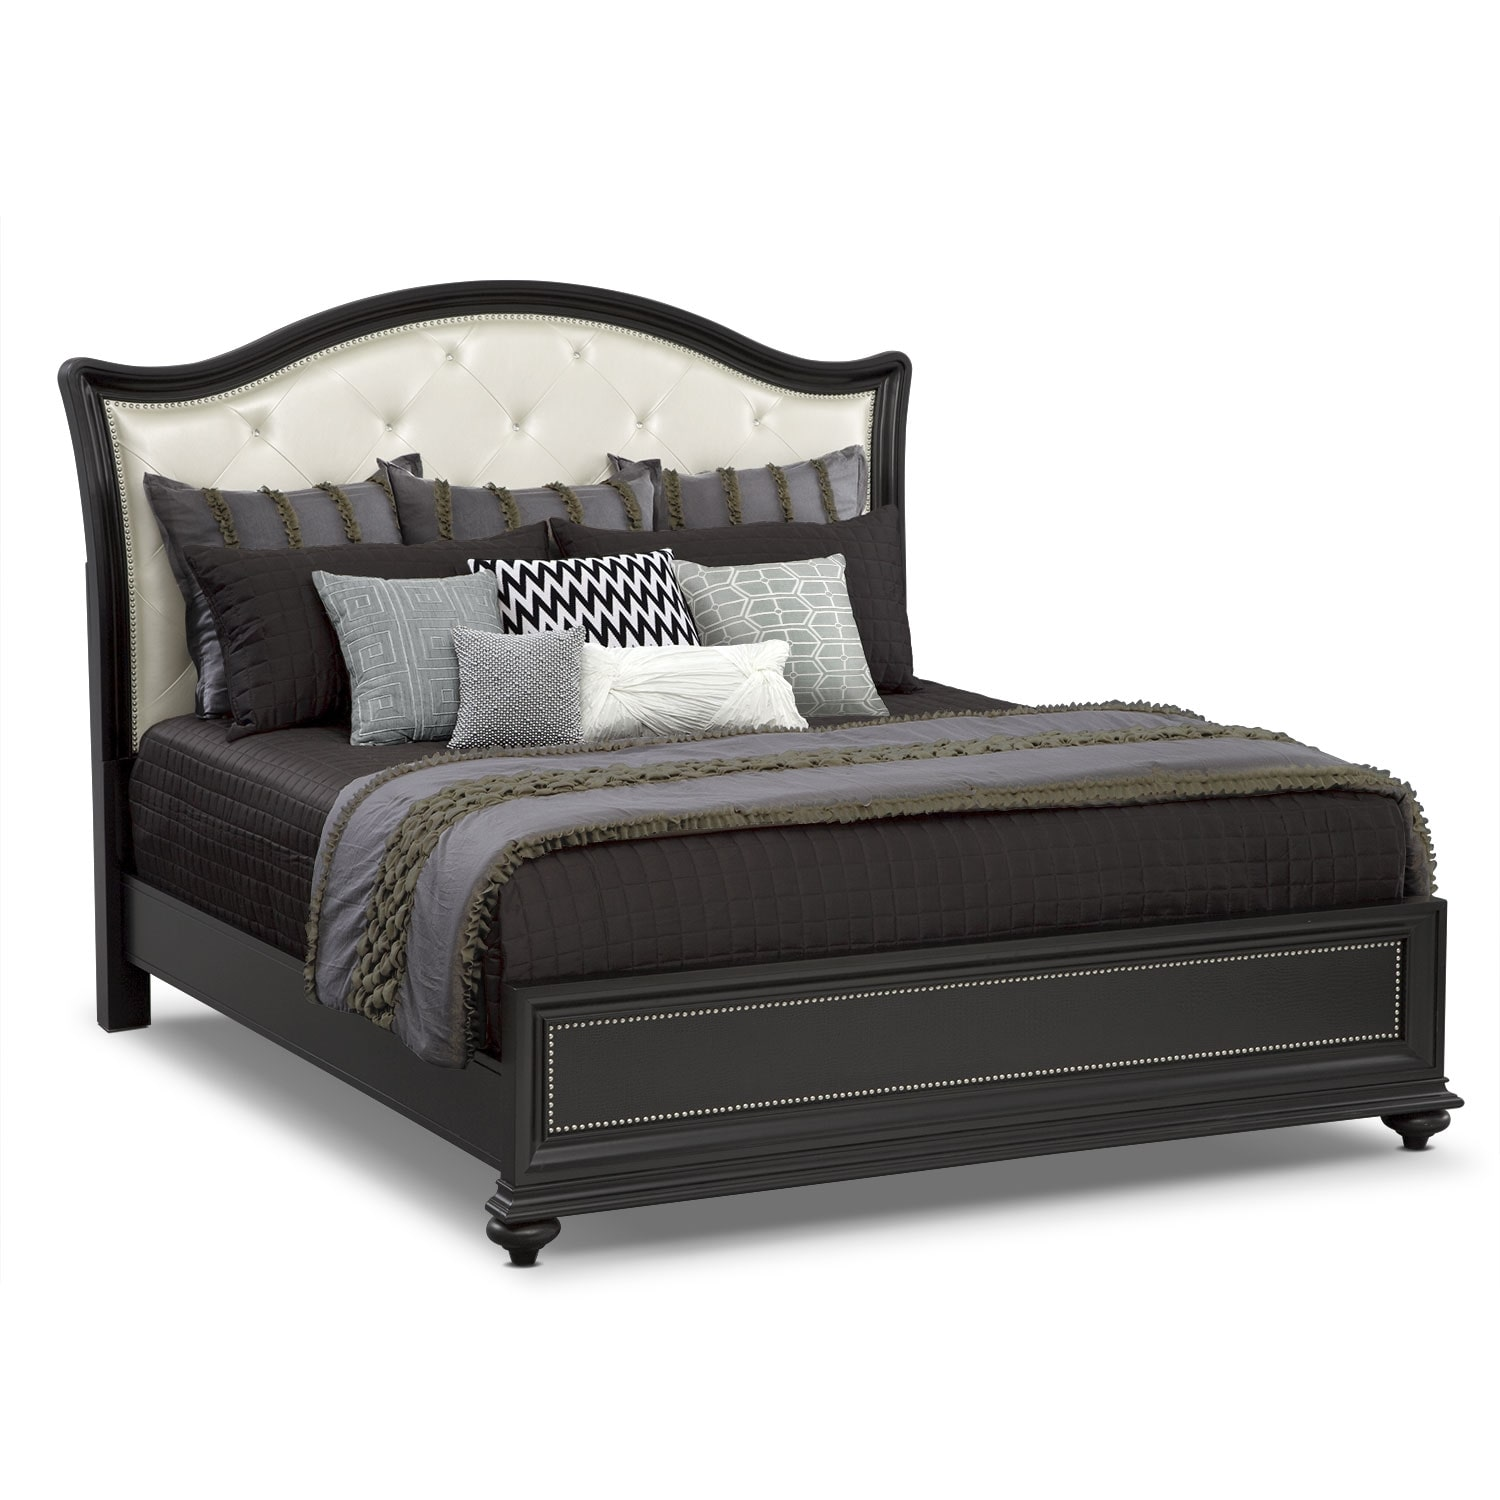 Accent and Occasional Furniture - Caroline II King Bedding Set